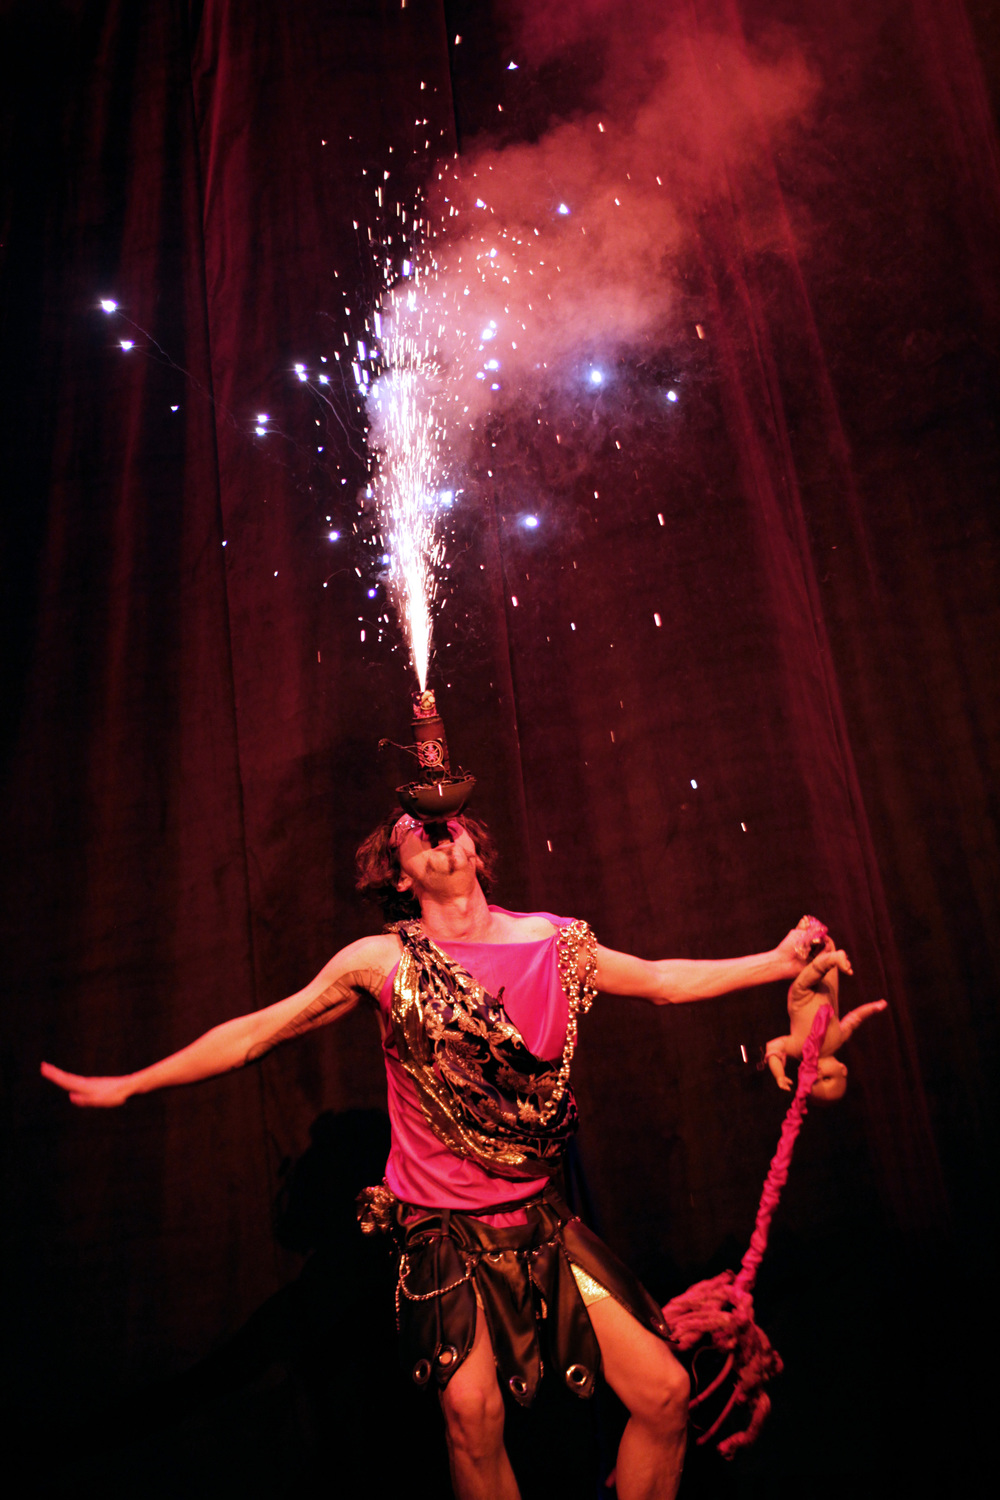 Caligula, swallowing a firework bedazzled sword, while carrying his newborn son/nephew. Very much in the spirit Christmas.